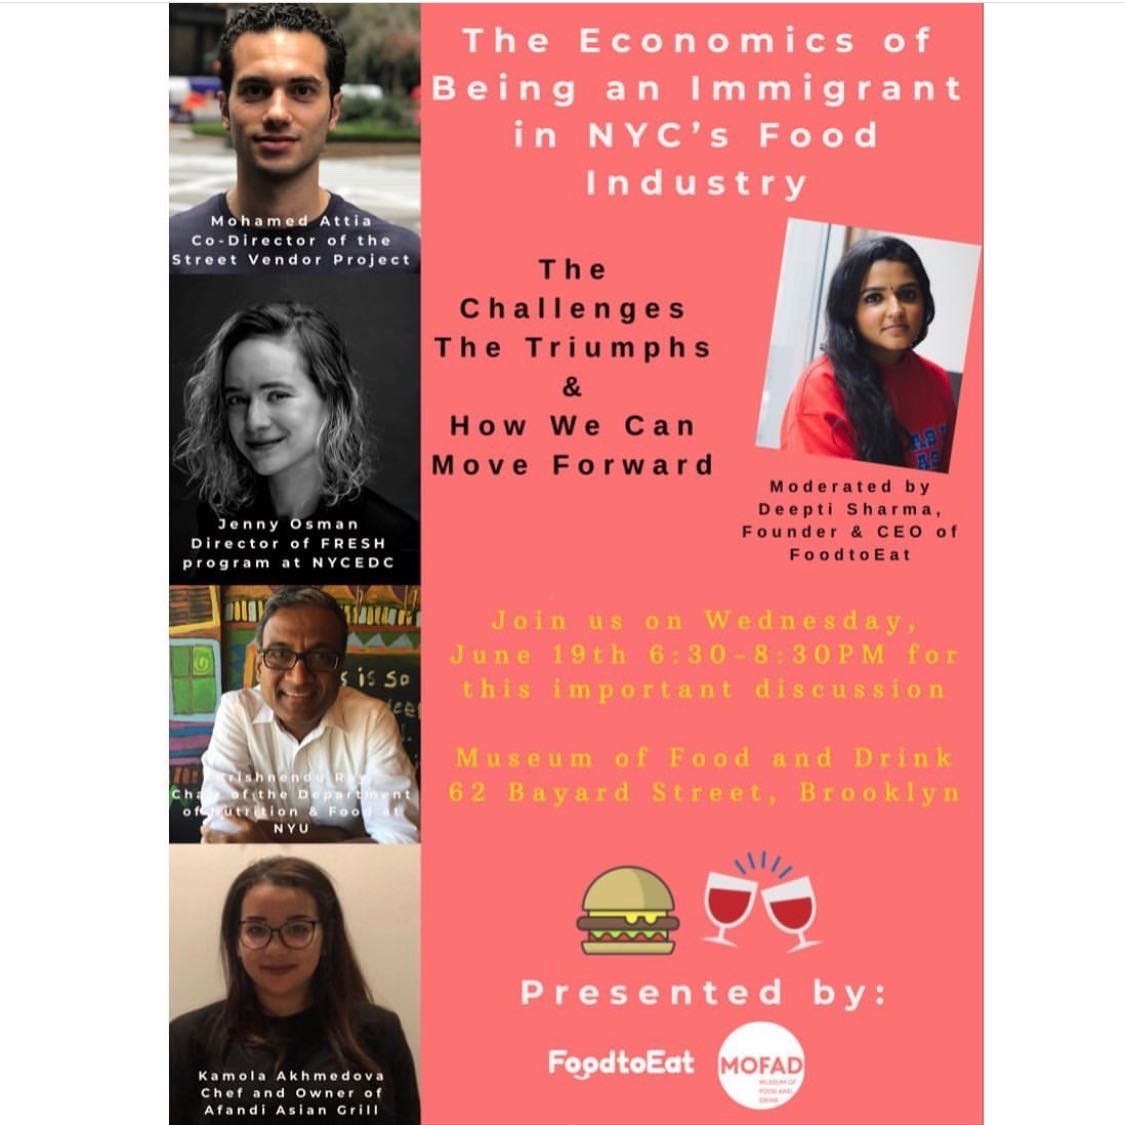 The Economics of Being an Immigrant in NYC's Food Industry     June 29, 2019  Moderator